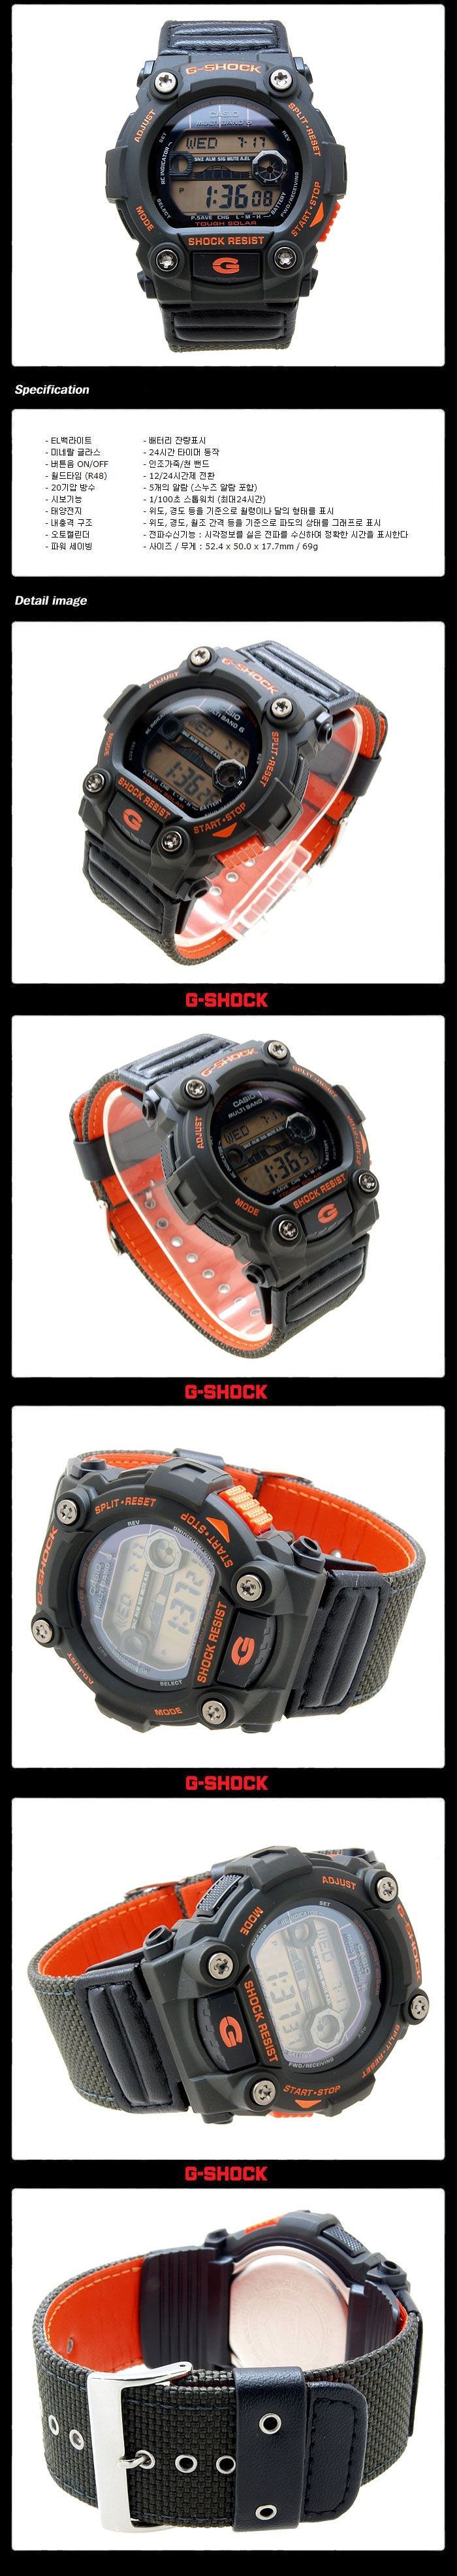 Casio G-Shock Digital Watch Gw-7900MS-3ER With Solar Powered Radio Controlled Cloth Strap